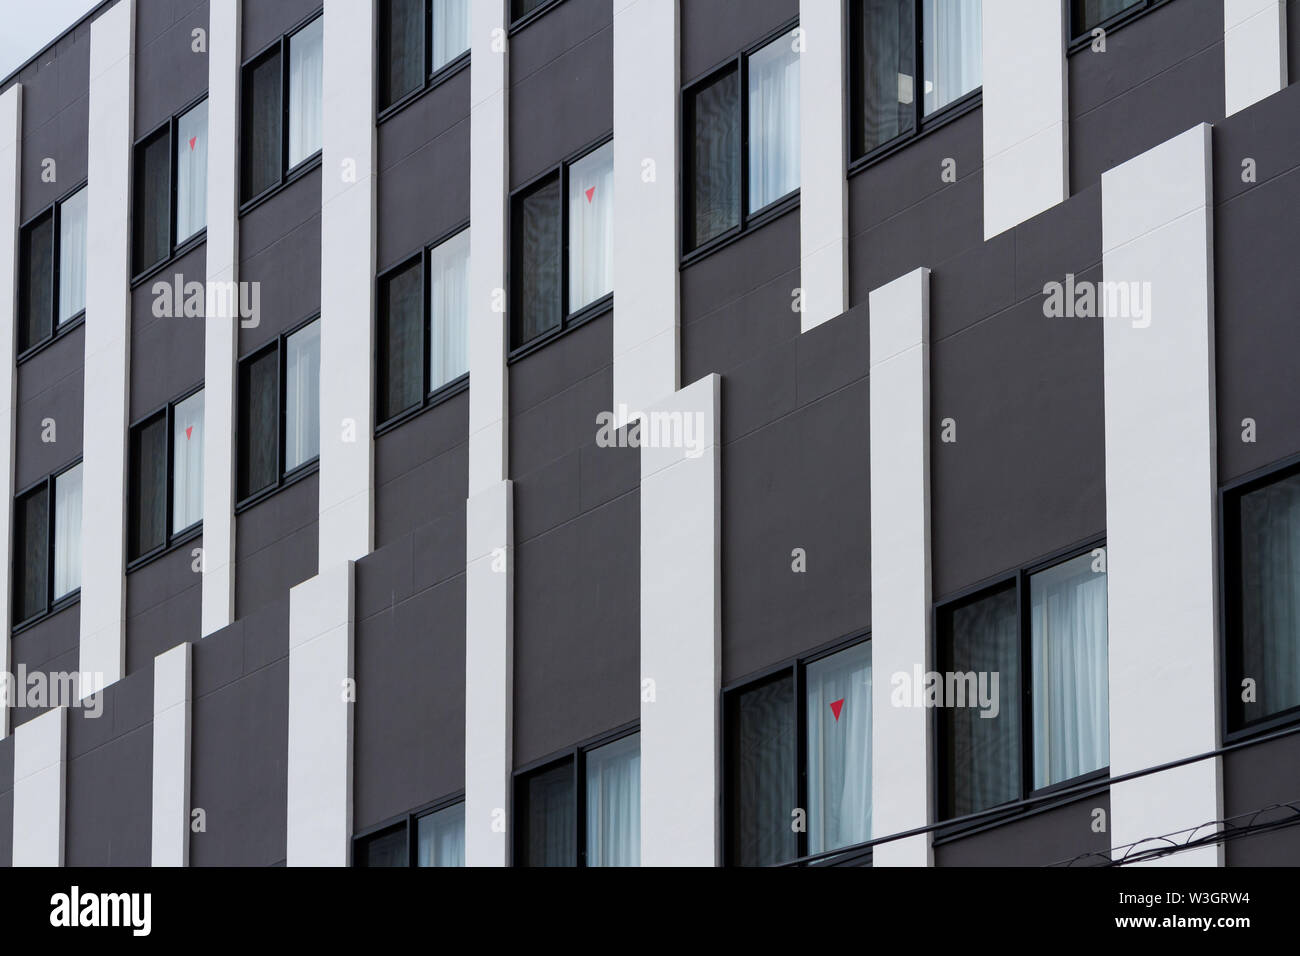 A modern office building abstract with black and white stripes. Yamato, Kanagawa, Japan. Wednesday July10th 2019 - Stock Image